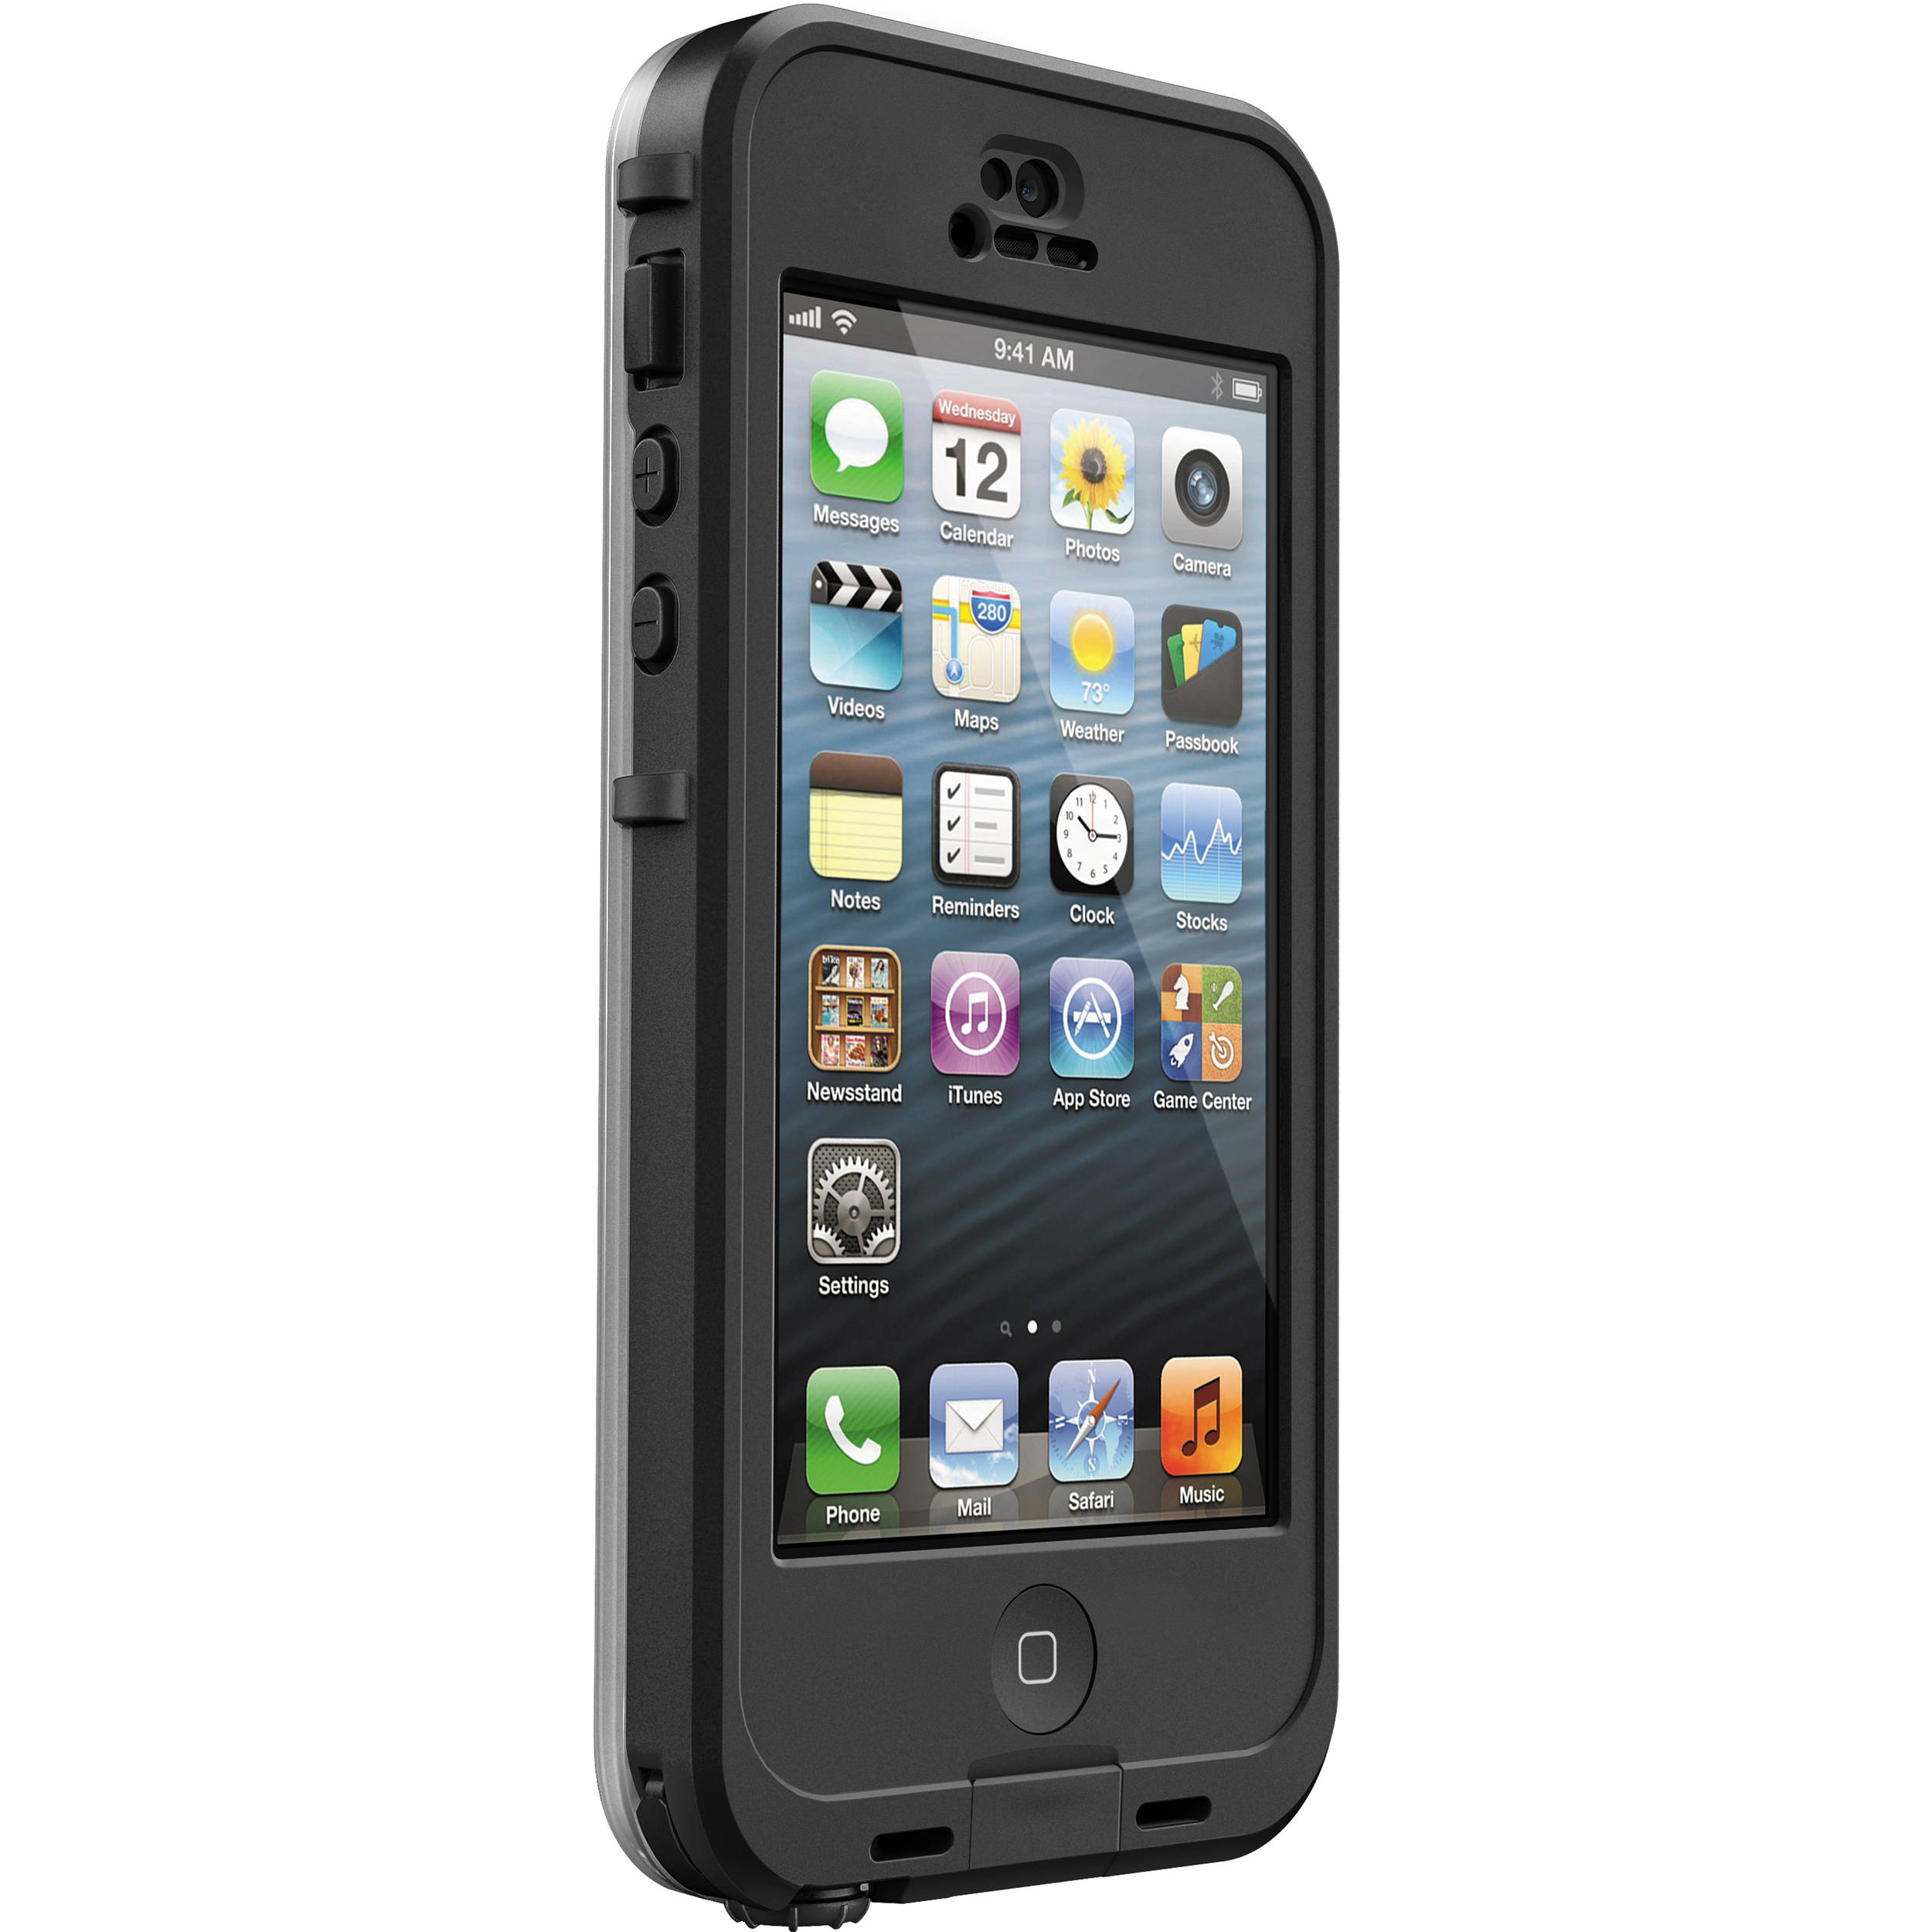 LifeProof Nüüd Case For IPhone 5 1307-03 B&H Photo